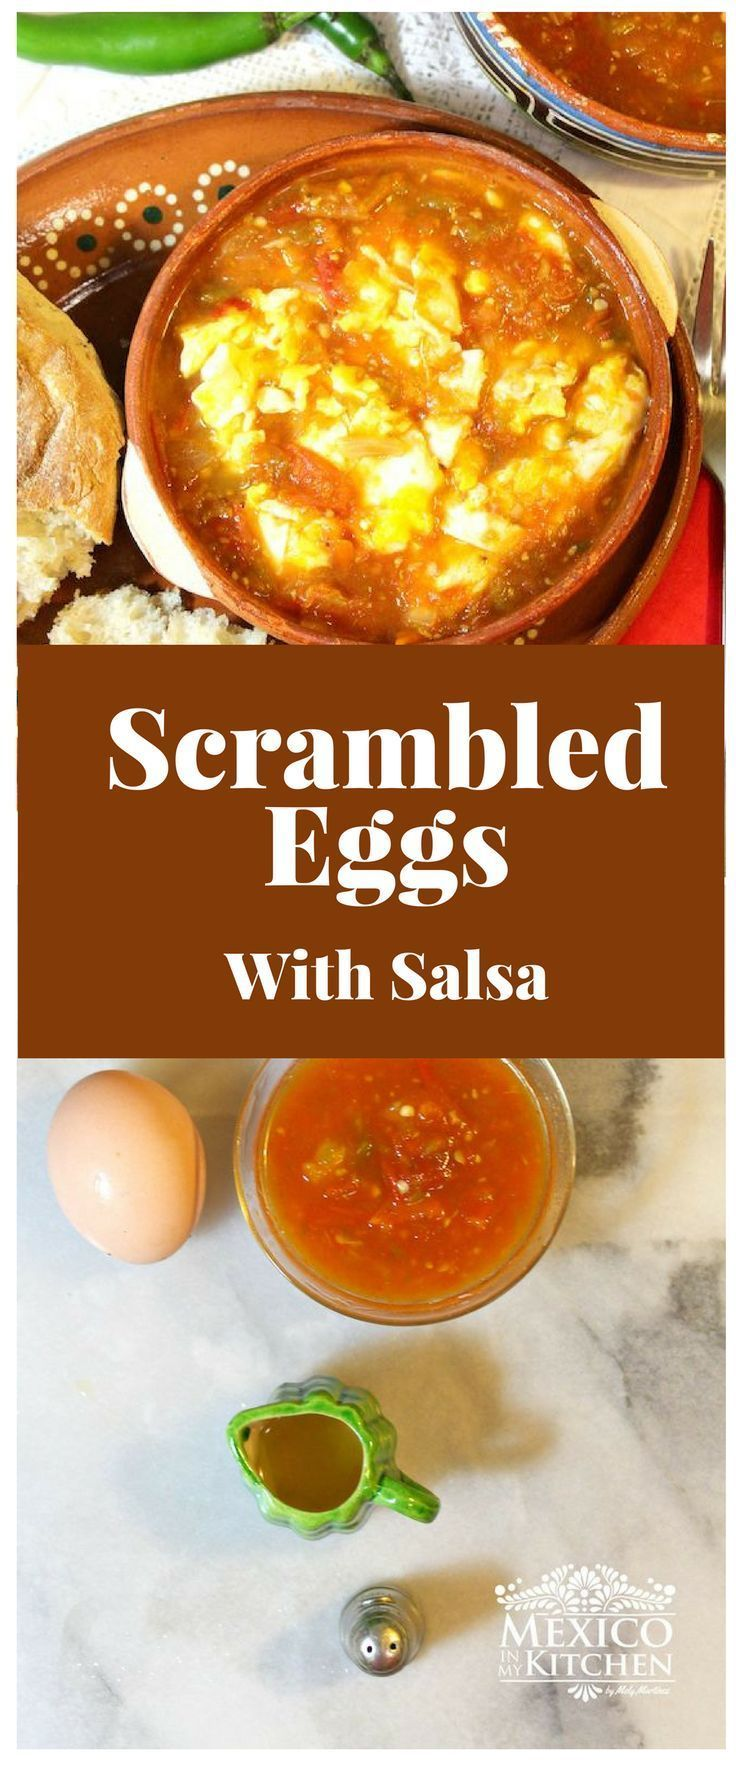 Scrambled Eggs In Salsa Is A Delicious Combination Thats Perfect For Breakfast Or Brunch Authentic Mexican FoodsMexican SpanishBrunch RecipesDinner